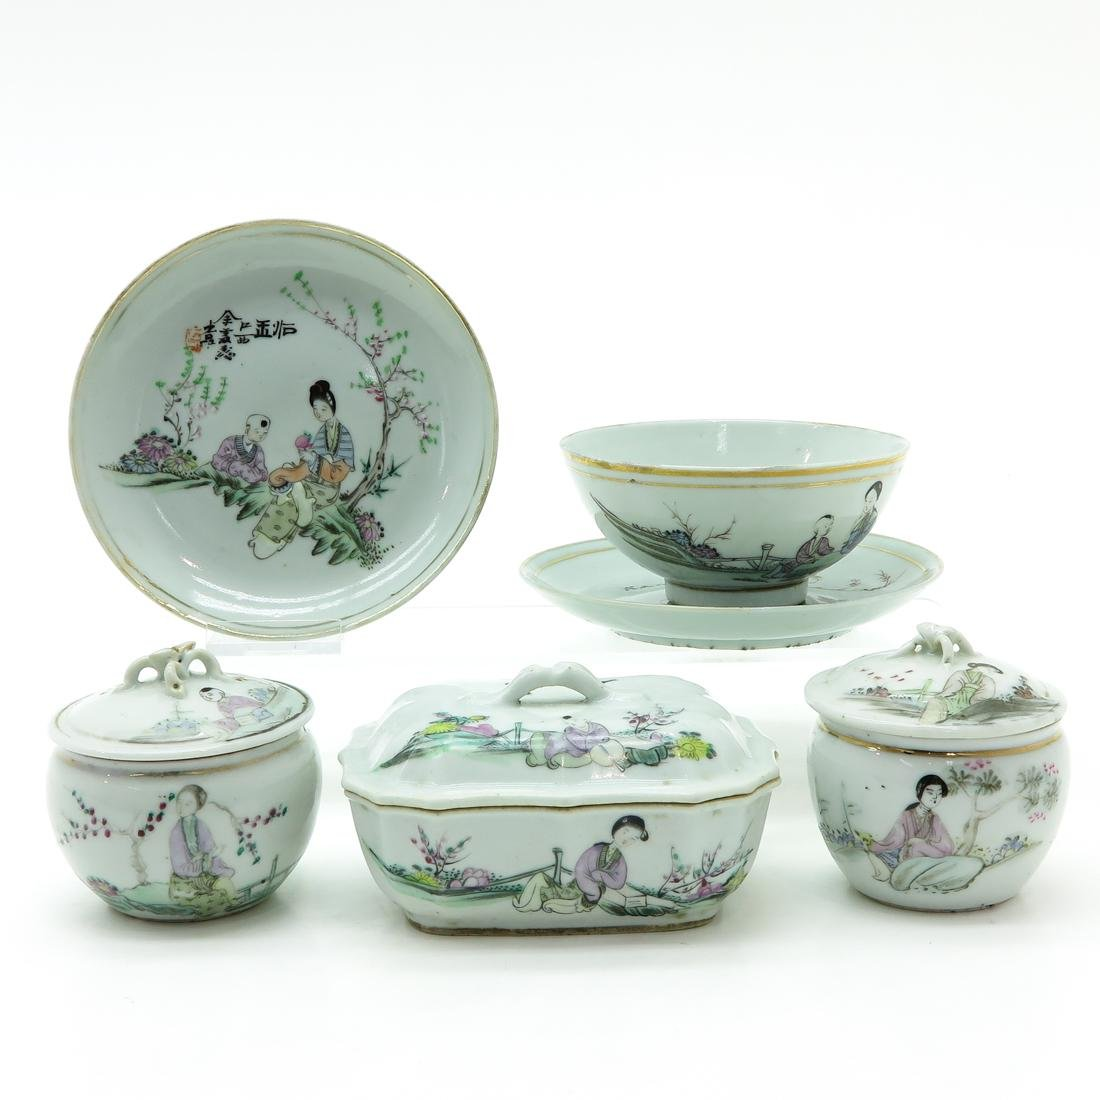 Diverse Lot of Porcelain